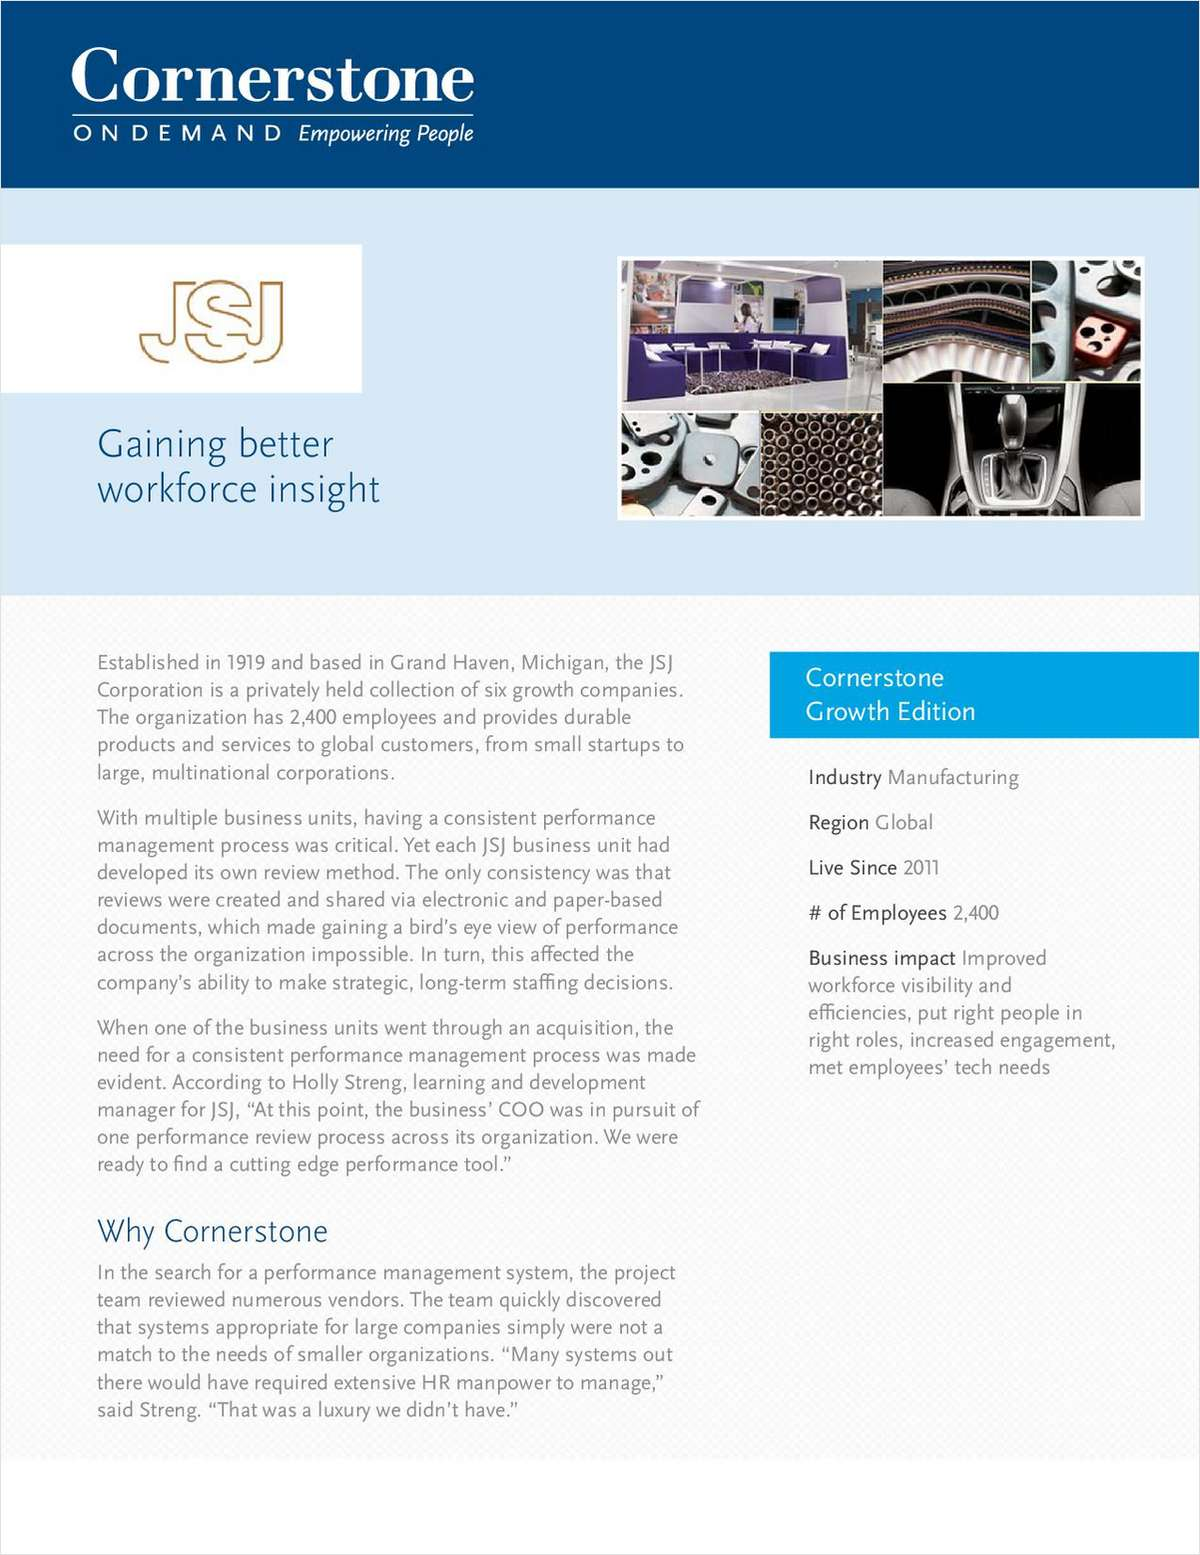 JSJ Case Study: Gaining Better Workforce Insight